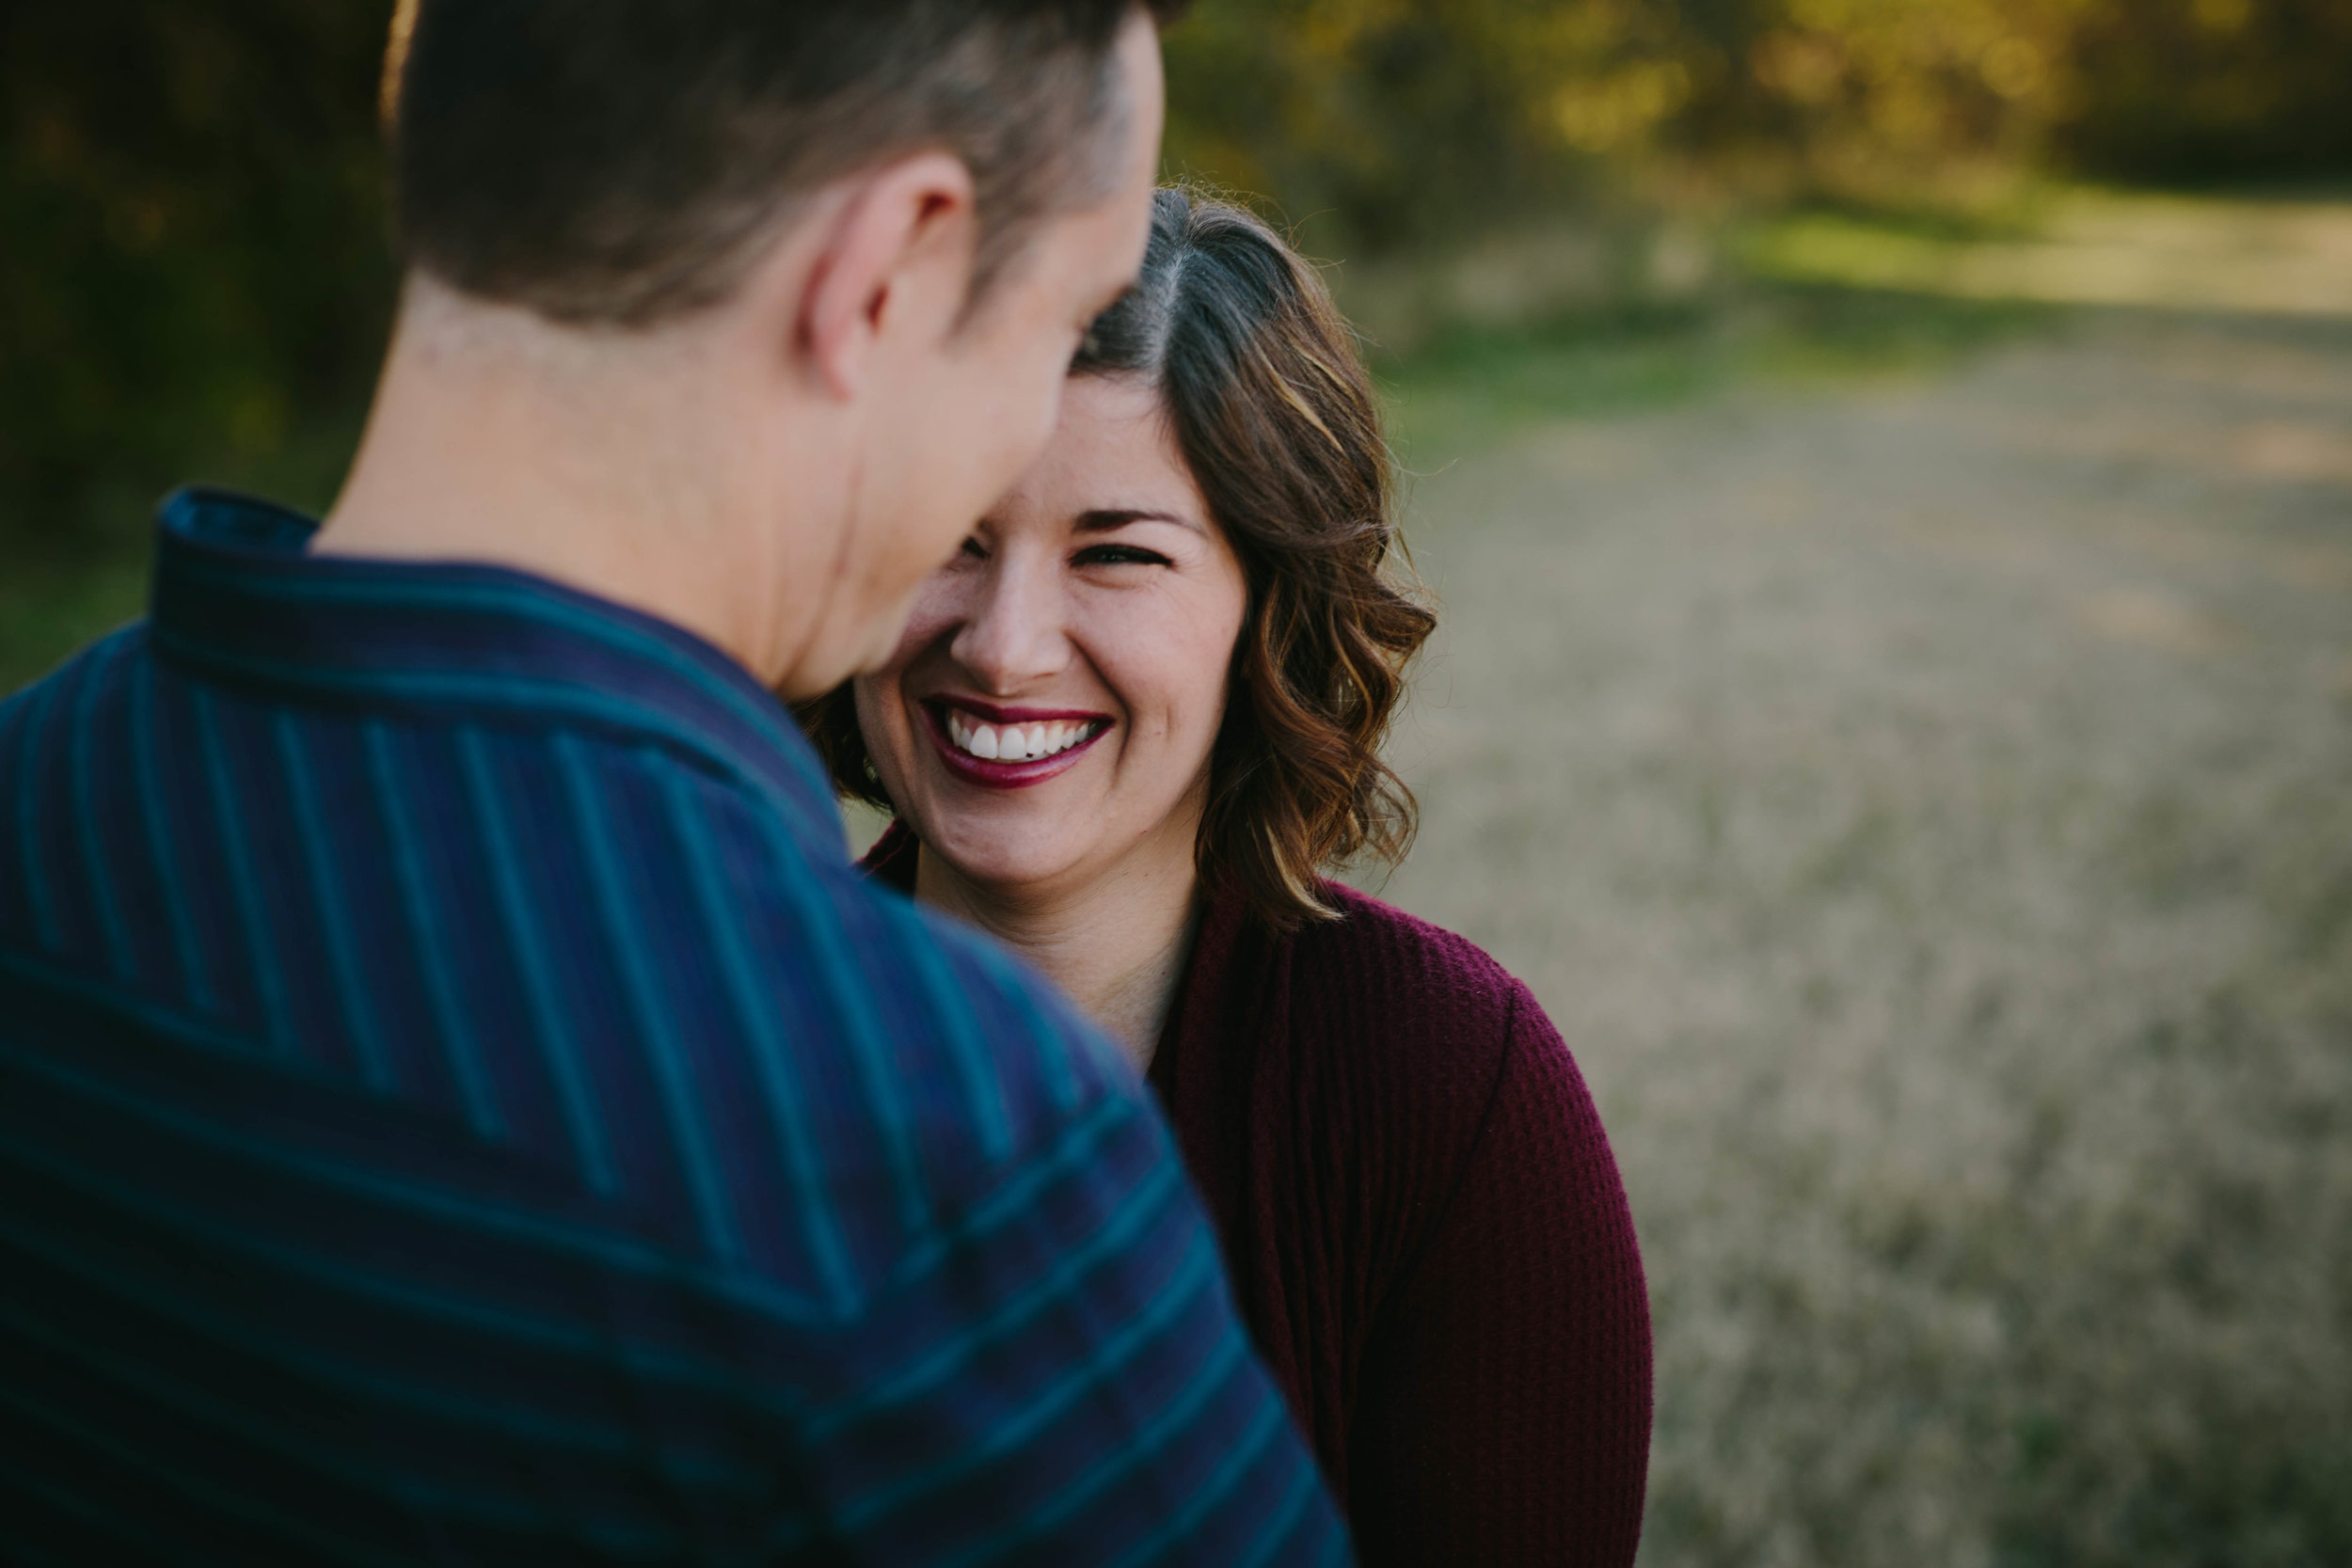 Mom and dad laughing together | AK family photographer